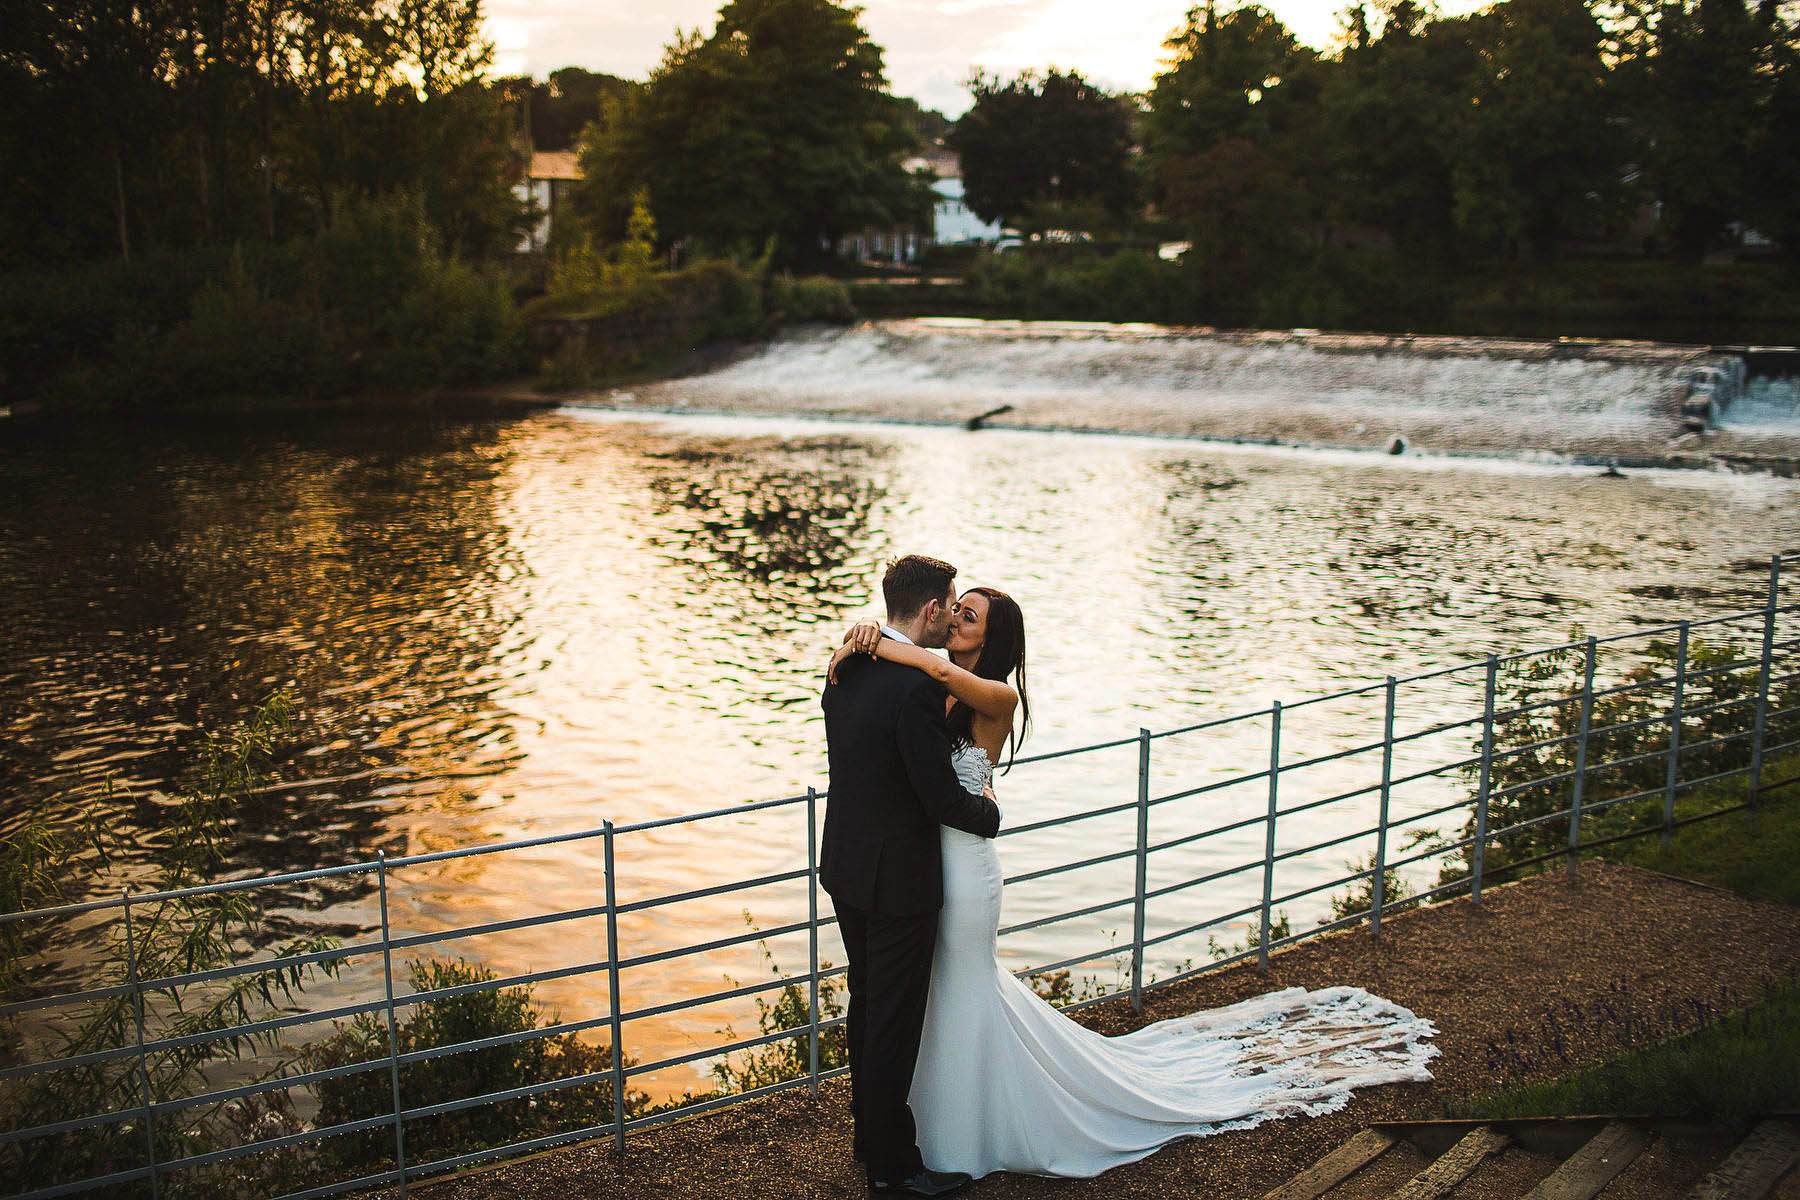 Sheffield wedding venues